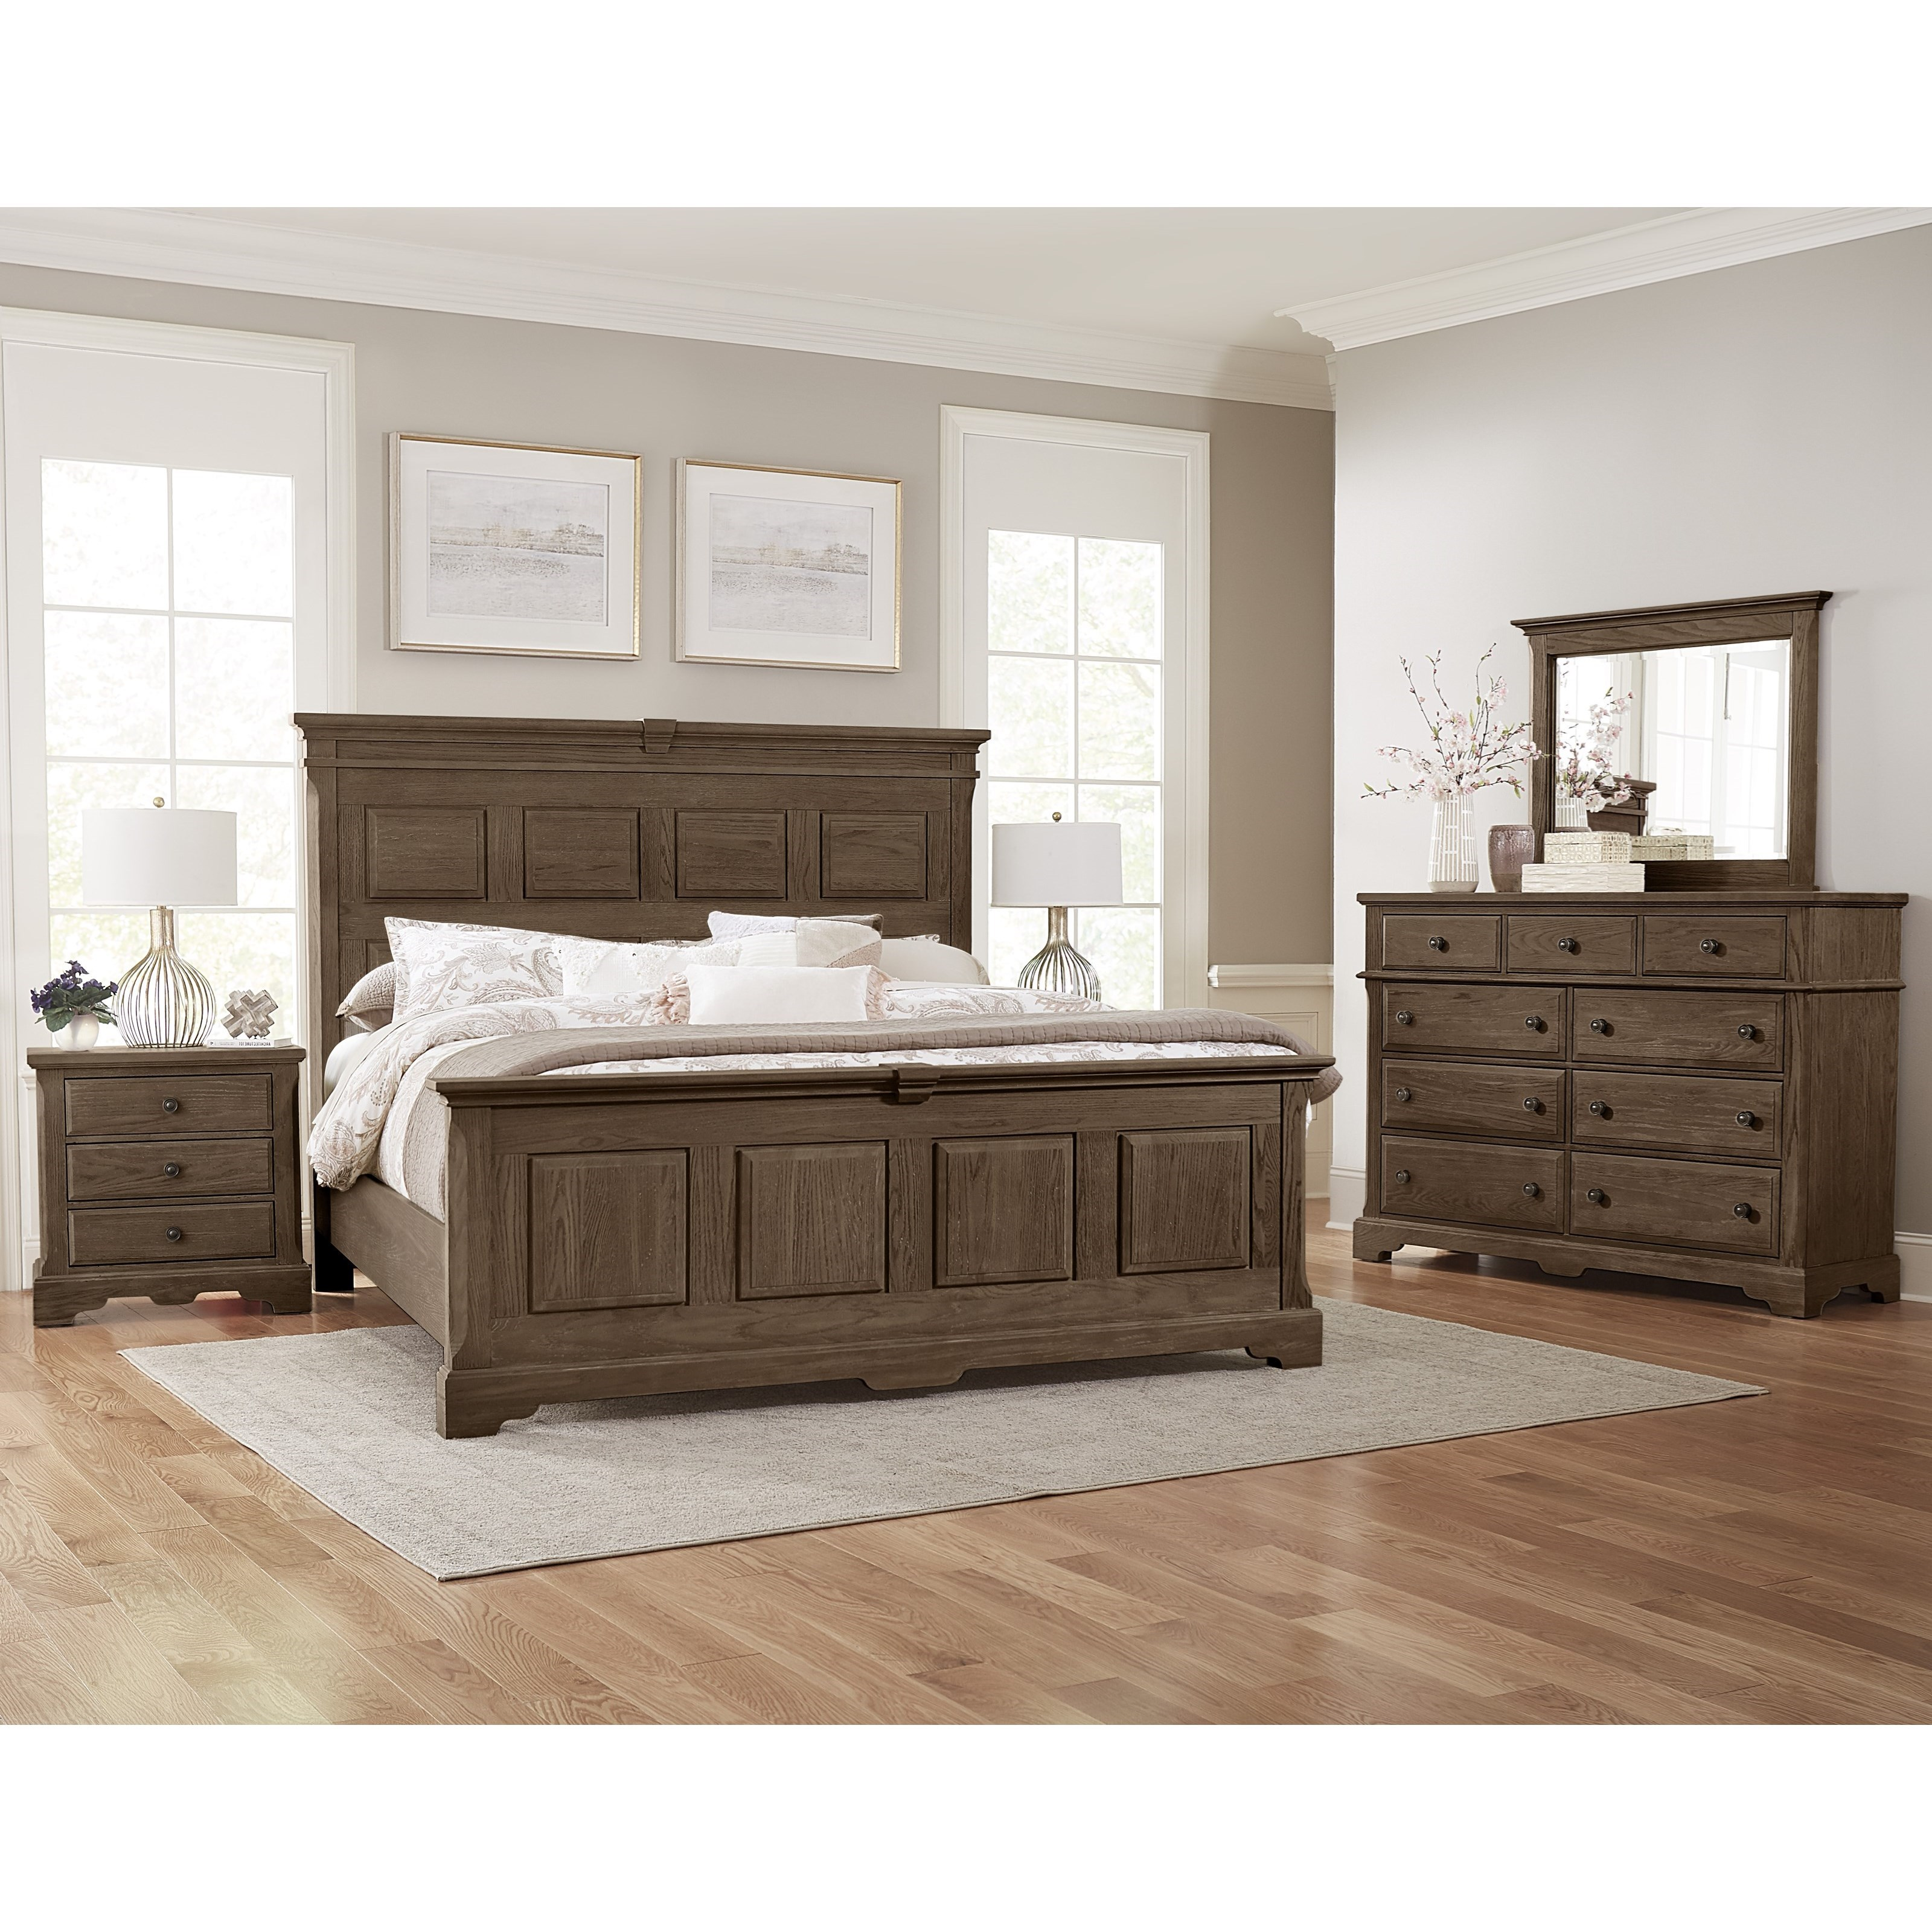 Heritage Queen Bedroom Group by Artisan & Post at Zak's Home